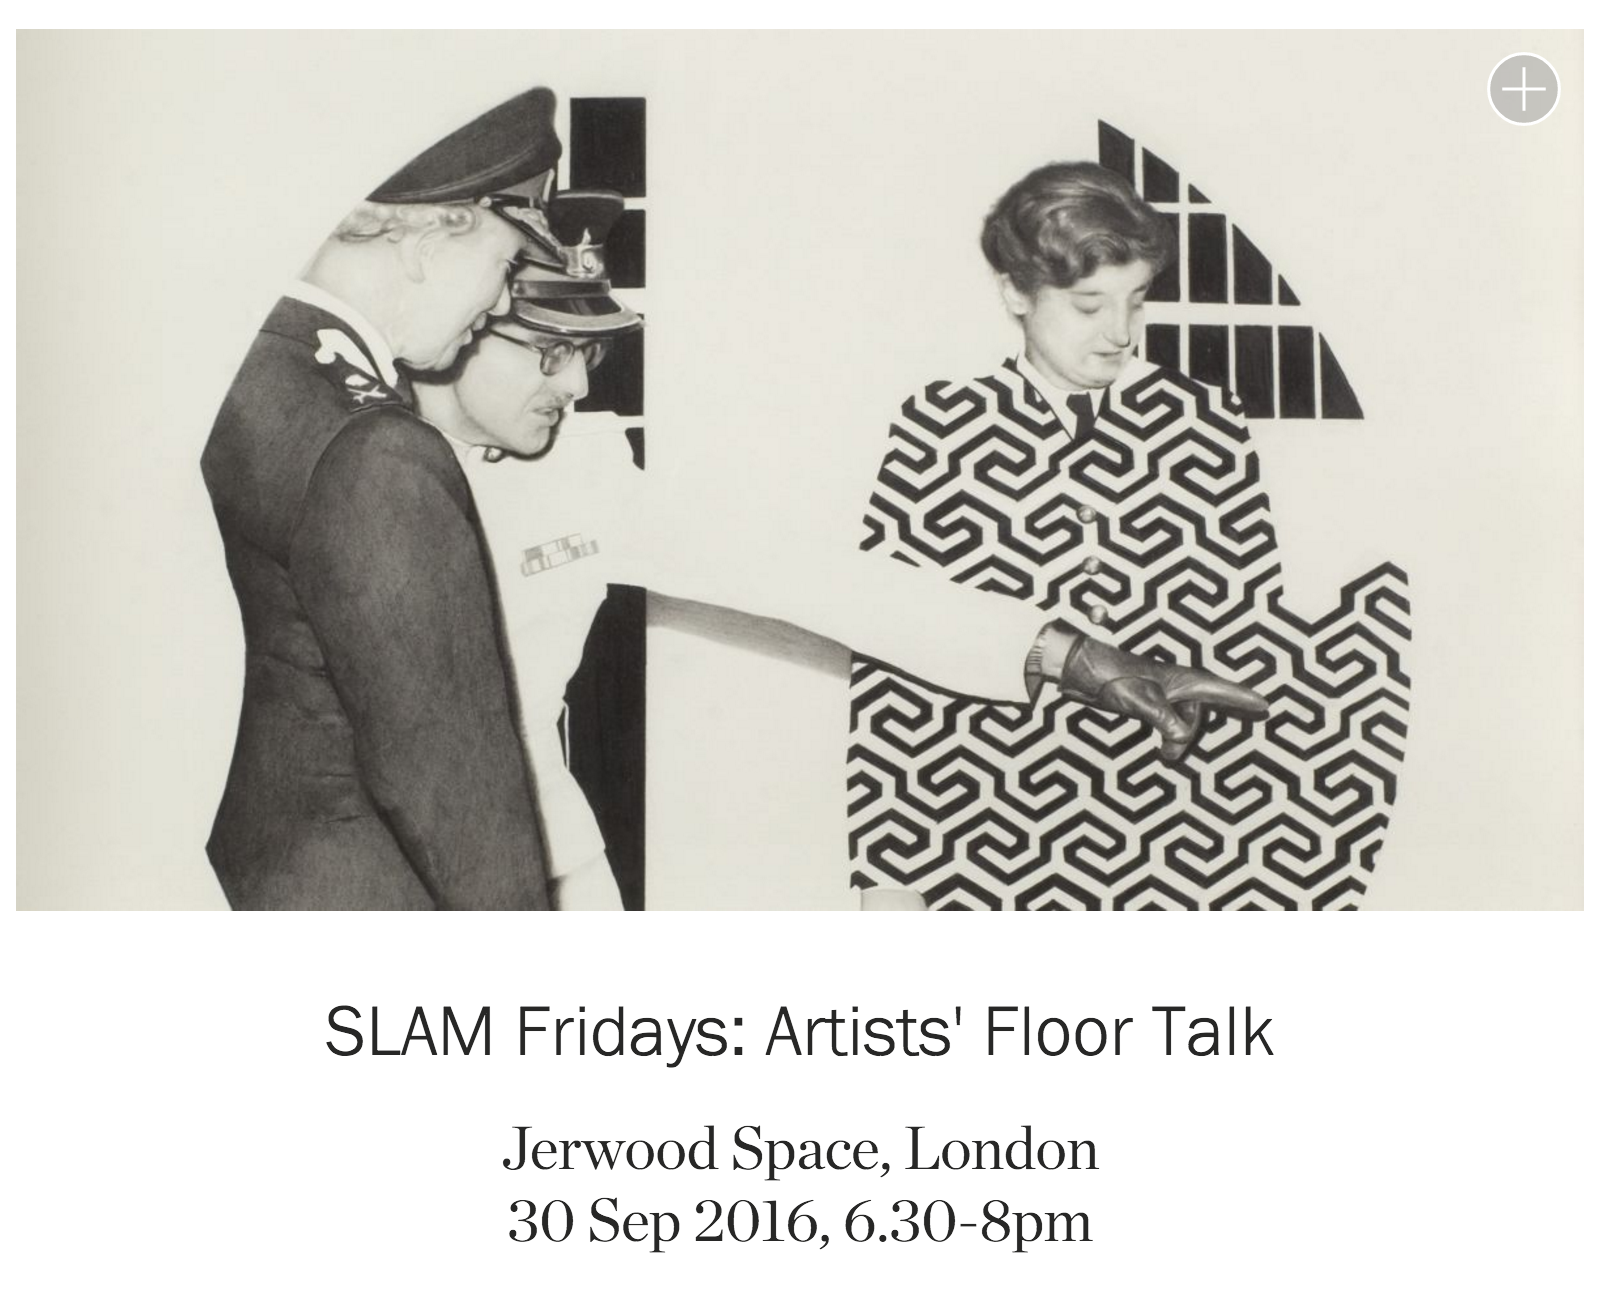 I have been invited to talk about my drawings at an introduction to the Jerwood Drawing Prize 2016 - with artists included in the exhibition.  The talk will be introduced and led by Paul Thomas, artist and co-founder of the Jerwood Drawing Prize.   The exhibition will open late between 5-8pm as part of SLAM Fridays, the late night opening of galleries in South London, on the last Friday of every month. The Artists' Floor Talk will begin at 6.30pm. It is free to attend, but booking is required via  Eventbrite .